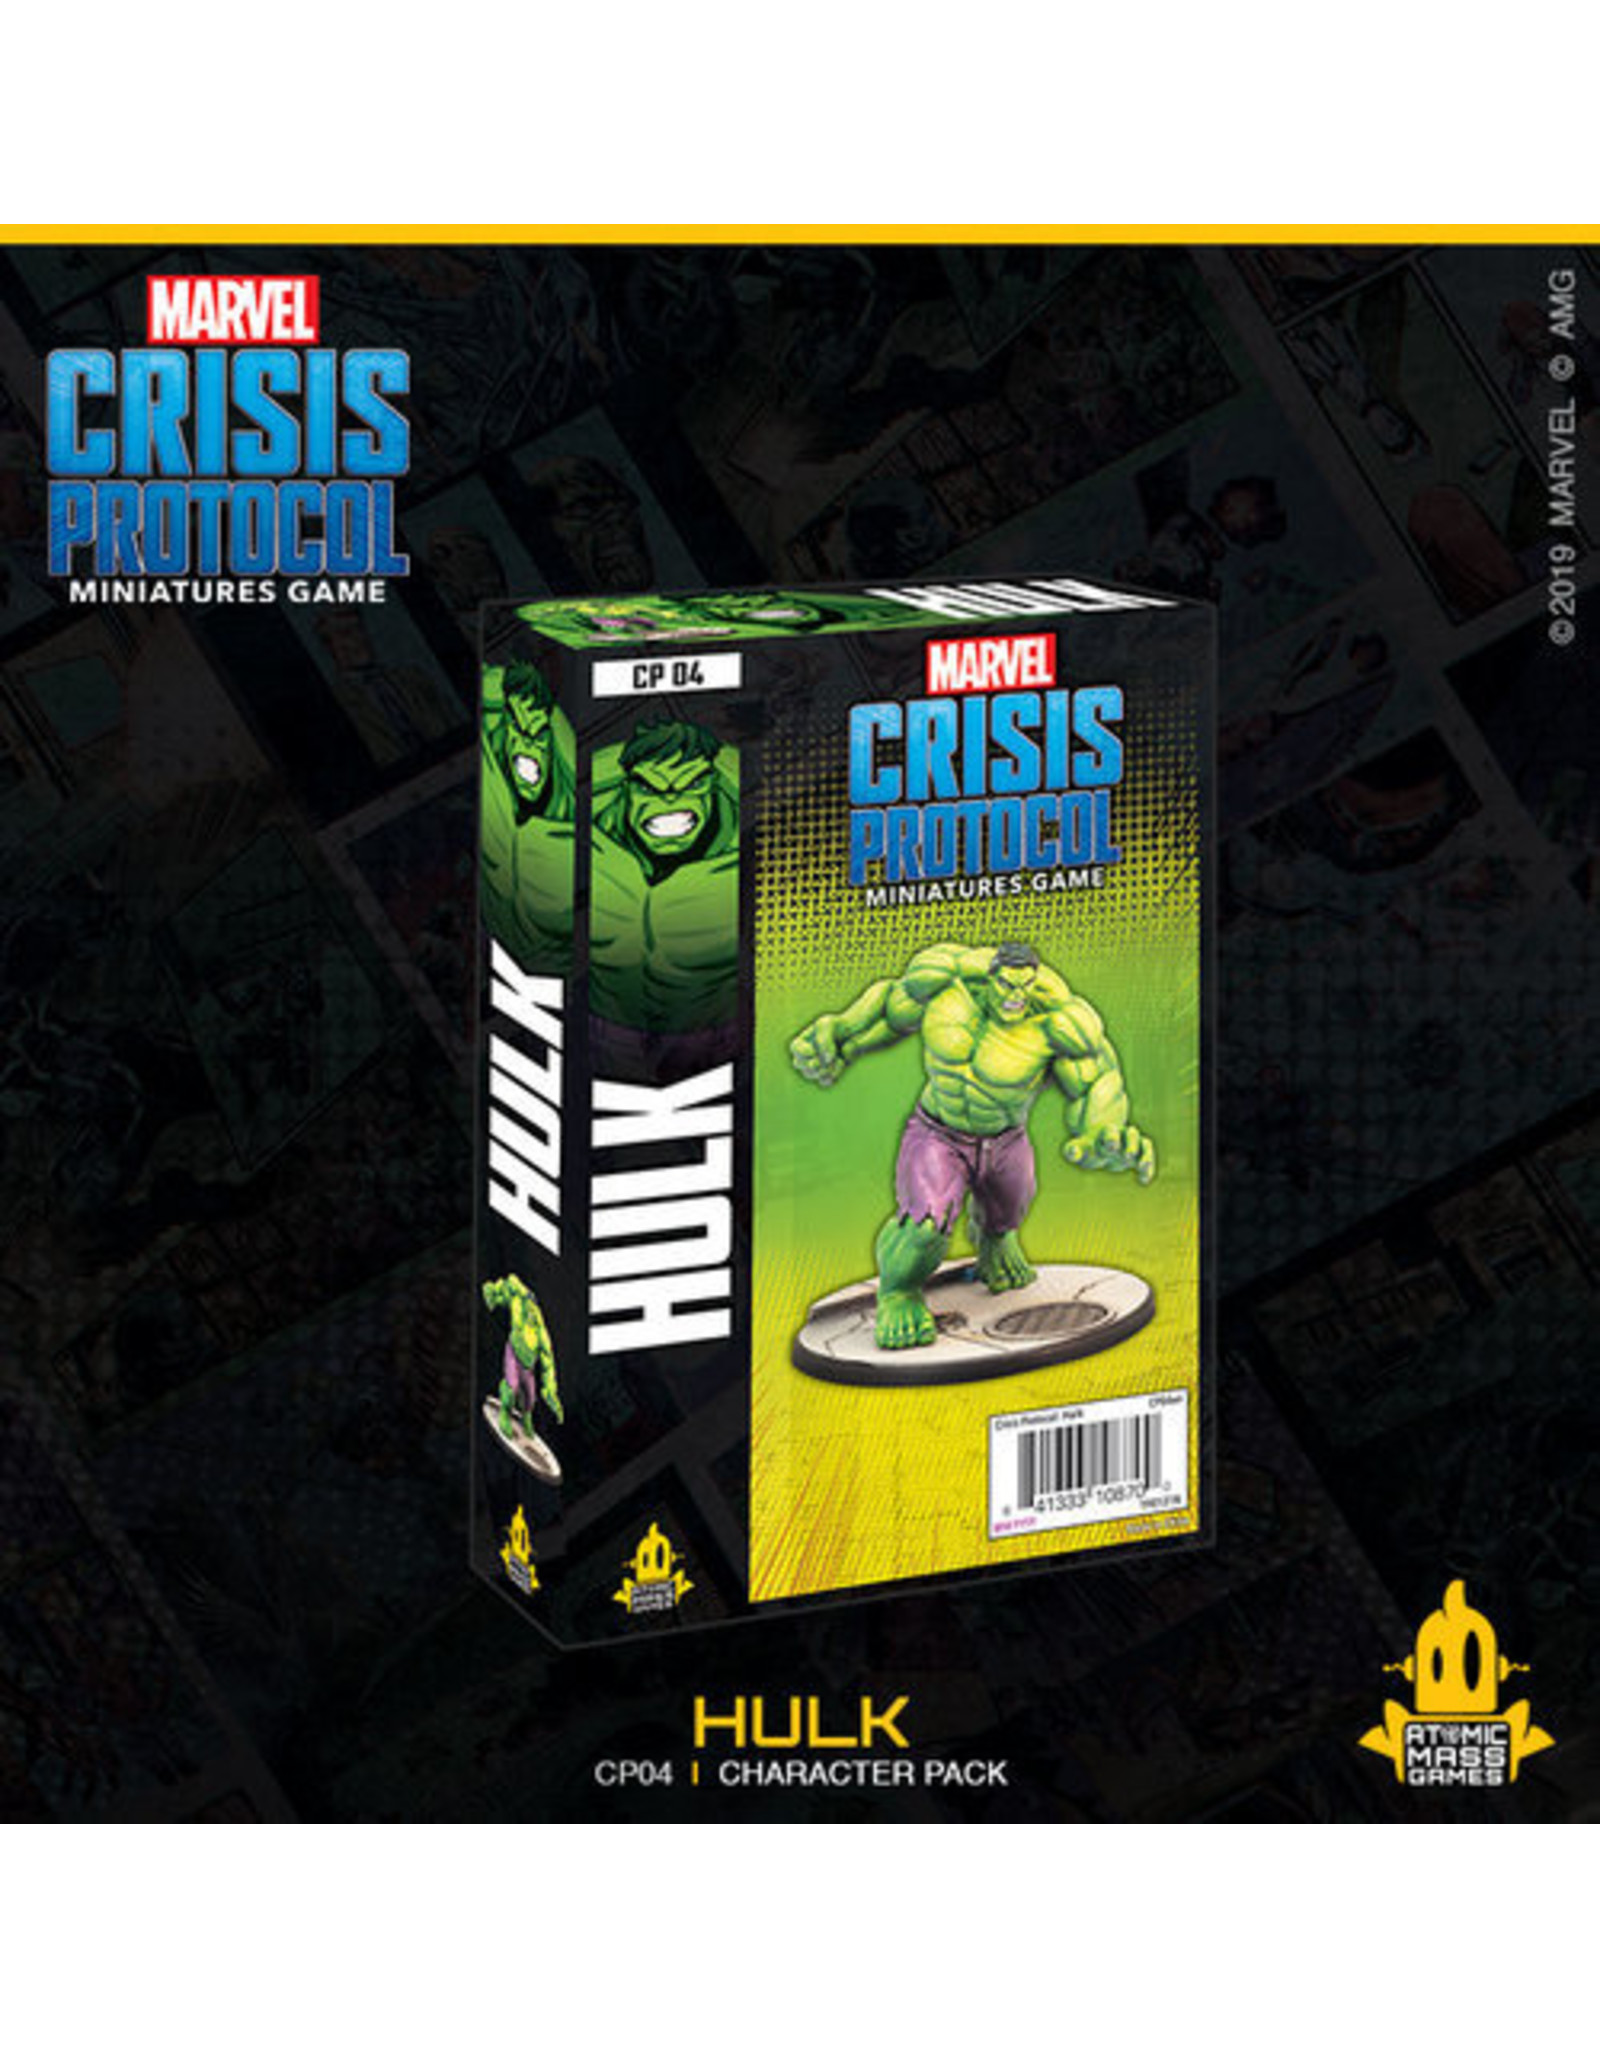 Atomic Mass Games Marvel: Crisis Protocol - Hulk